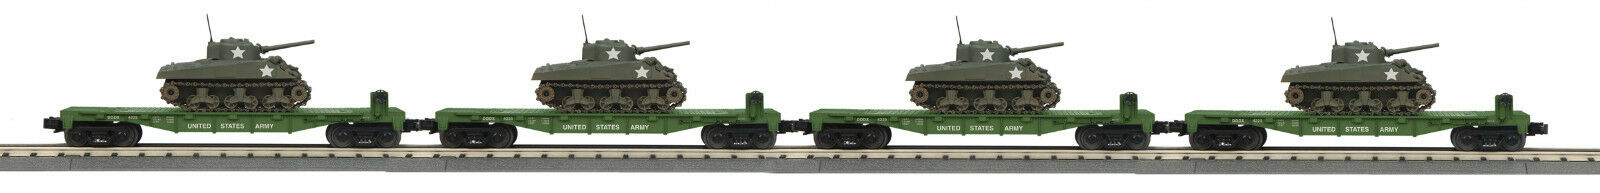 MTH  30-7093 O Gauge RailKing 4-Car Flat Car w w w Sherman Tank Set 7b7c75